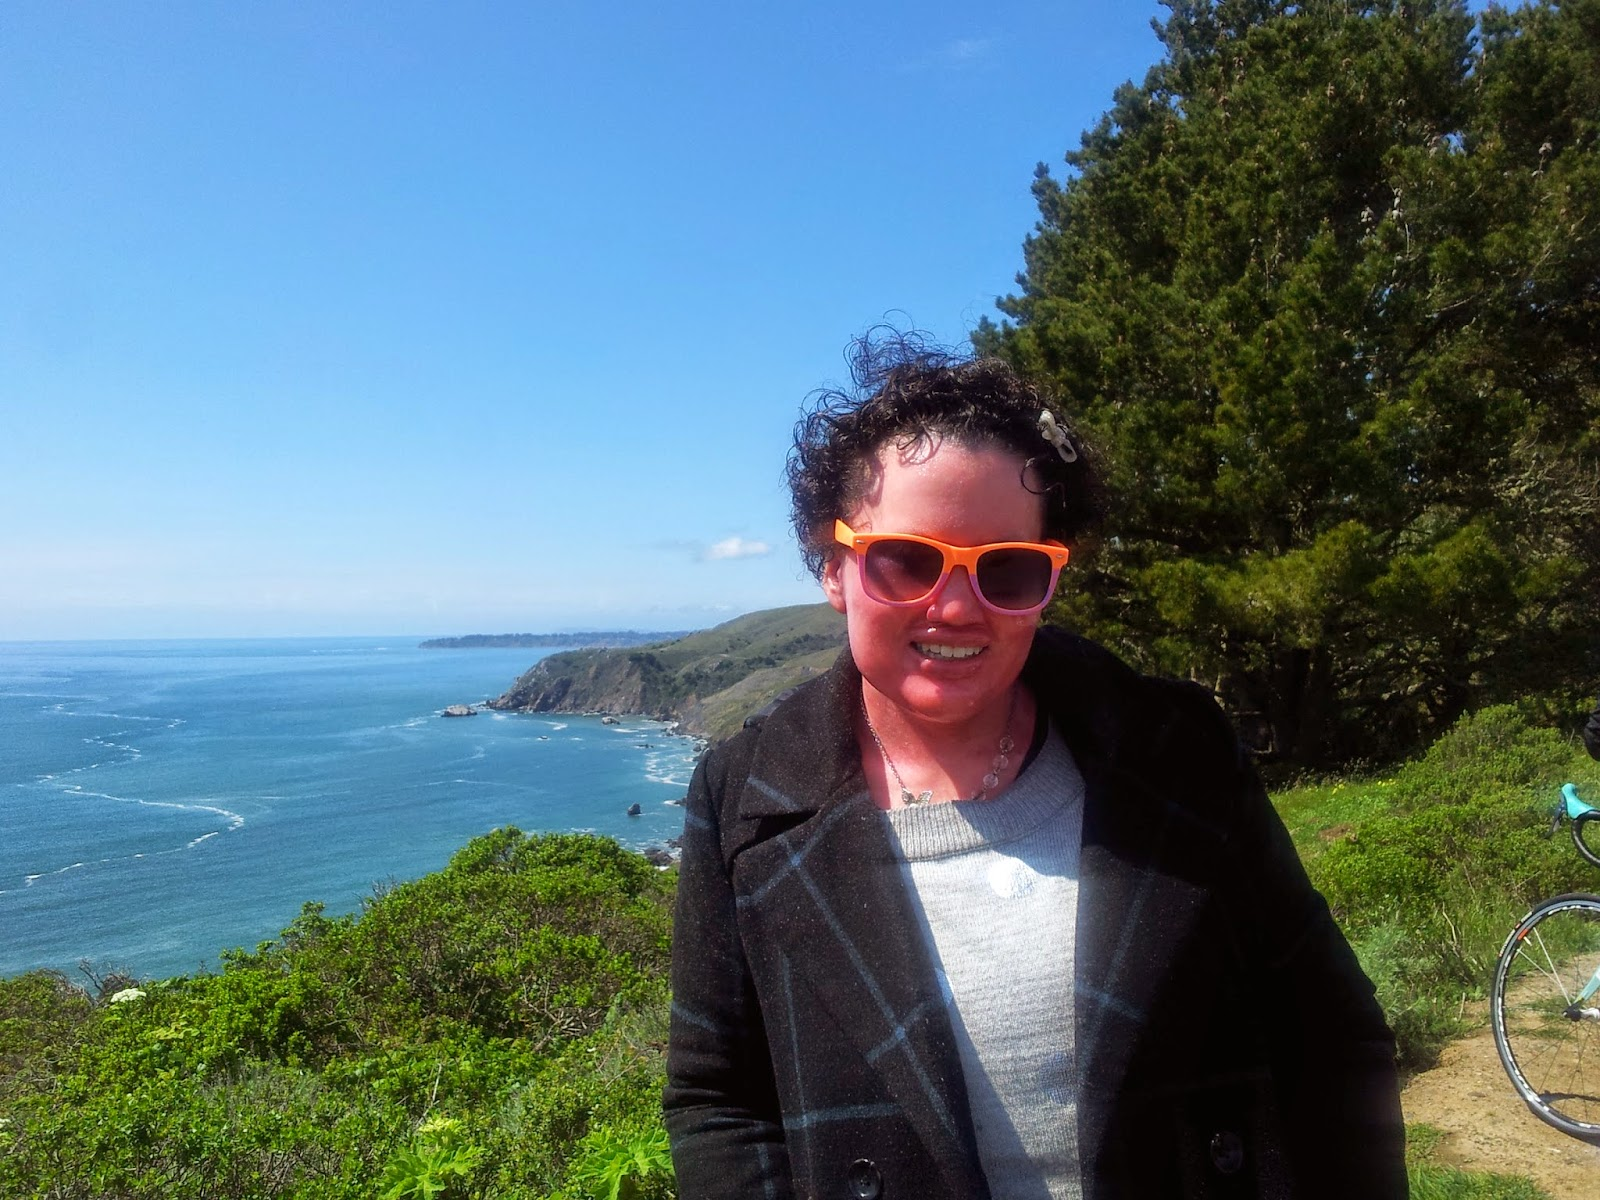 Carly Findlay in front of sea at Sausalito, USA